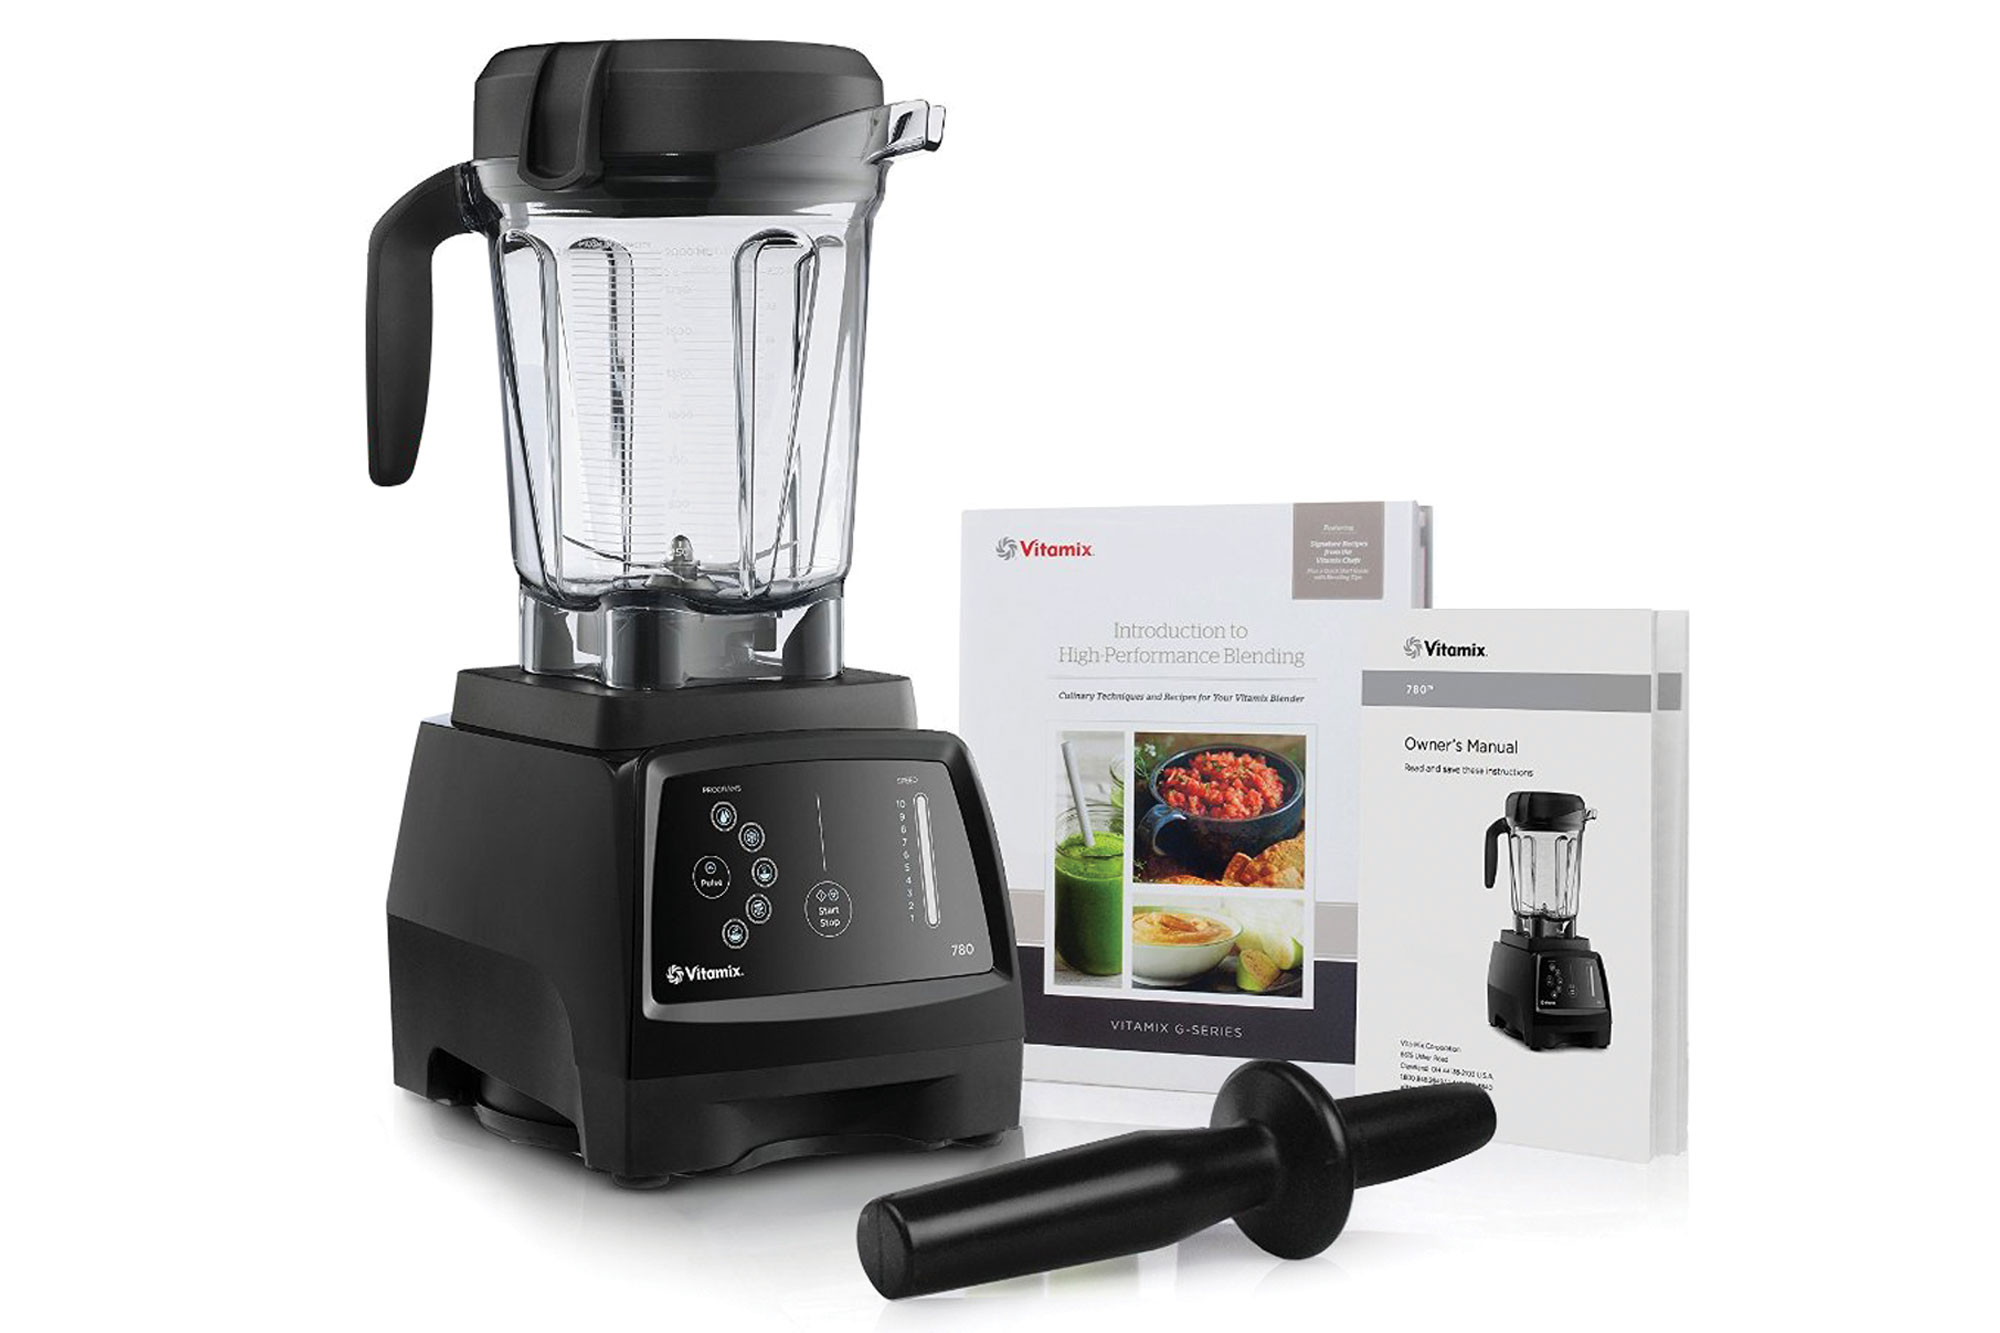 Vitamix 780 Blender With Touchscreen Control Cutlery And